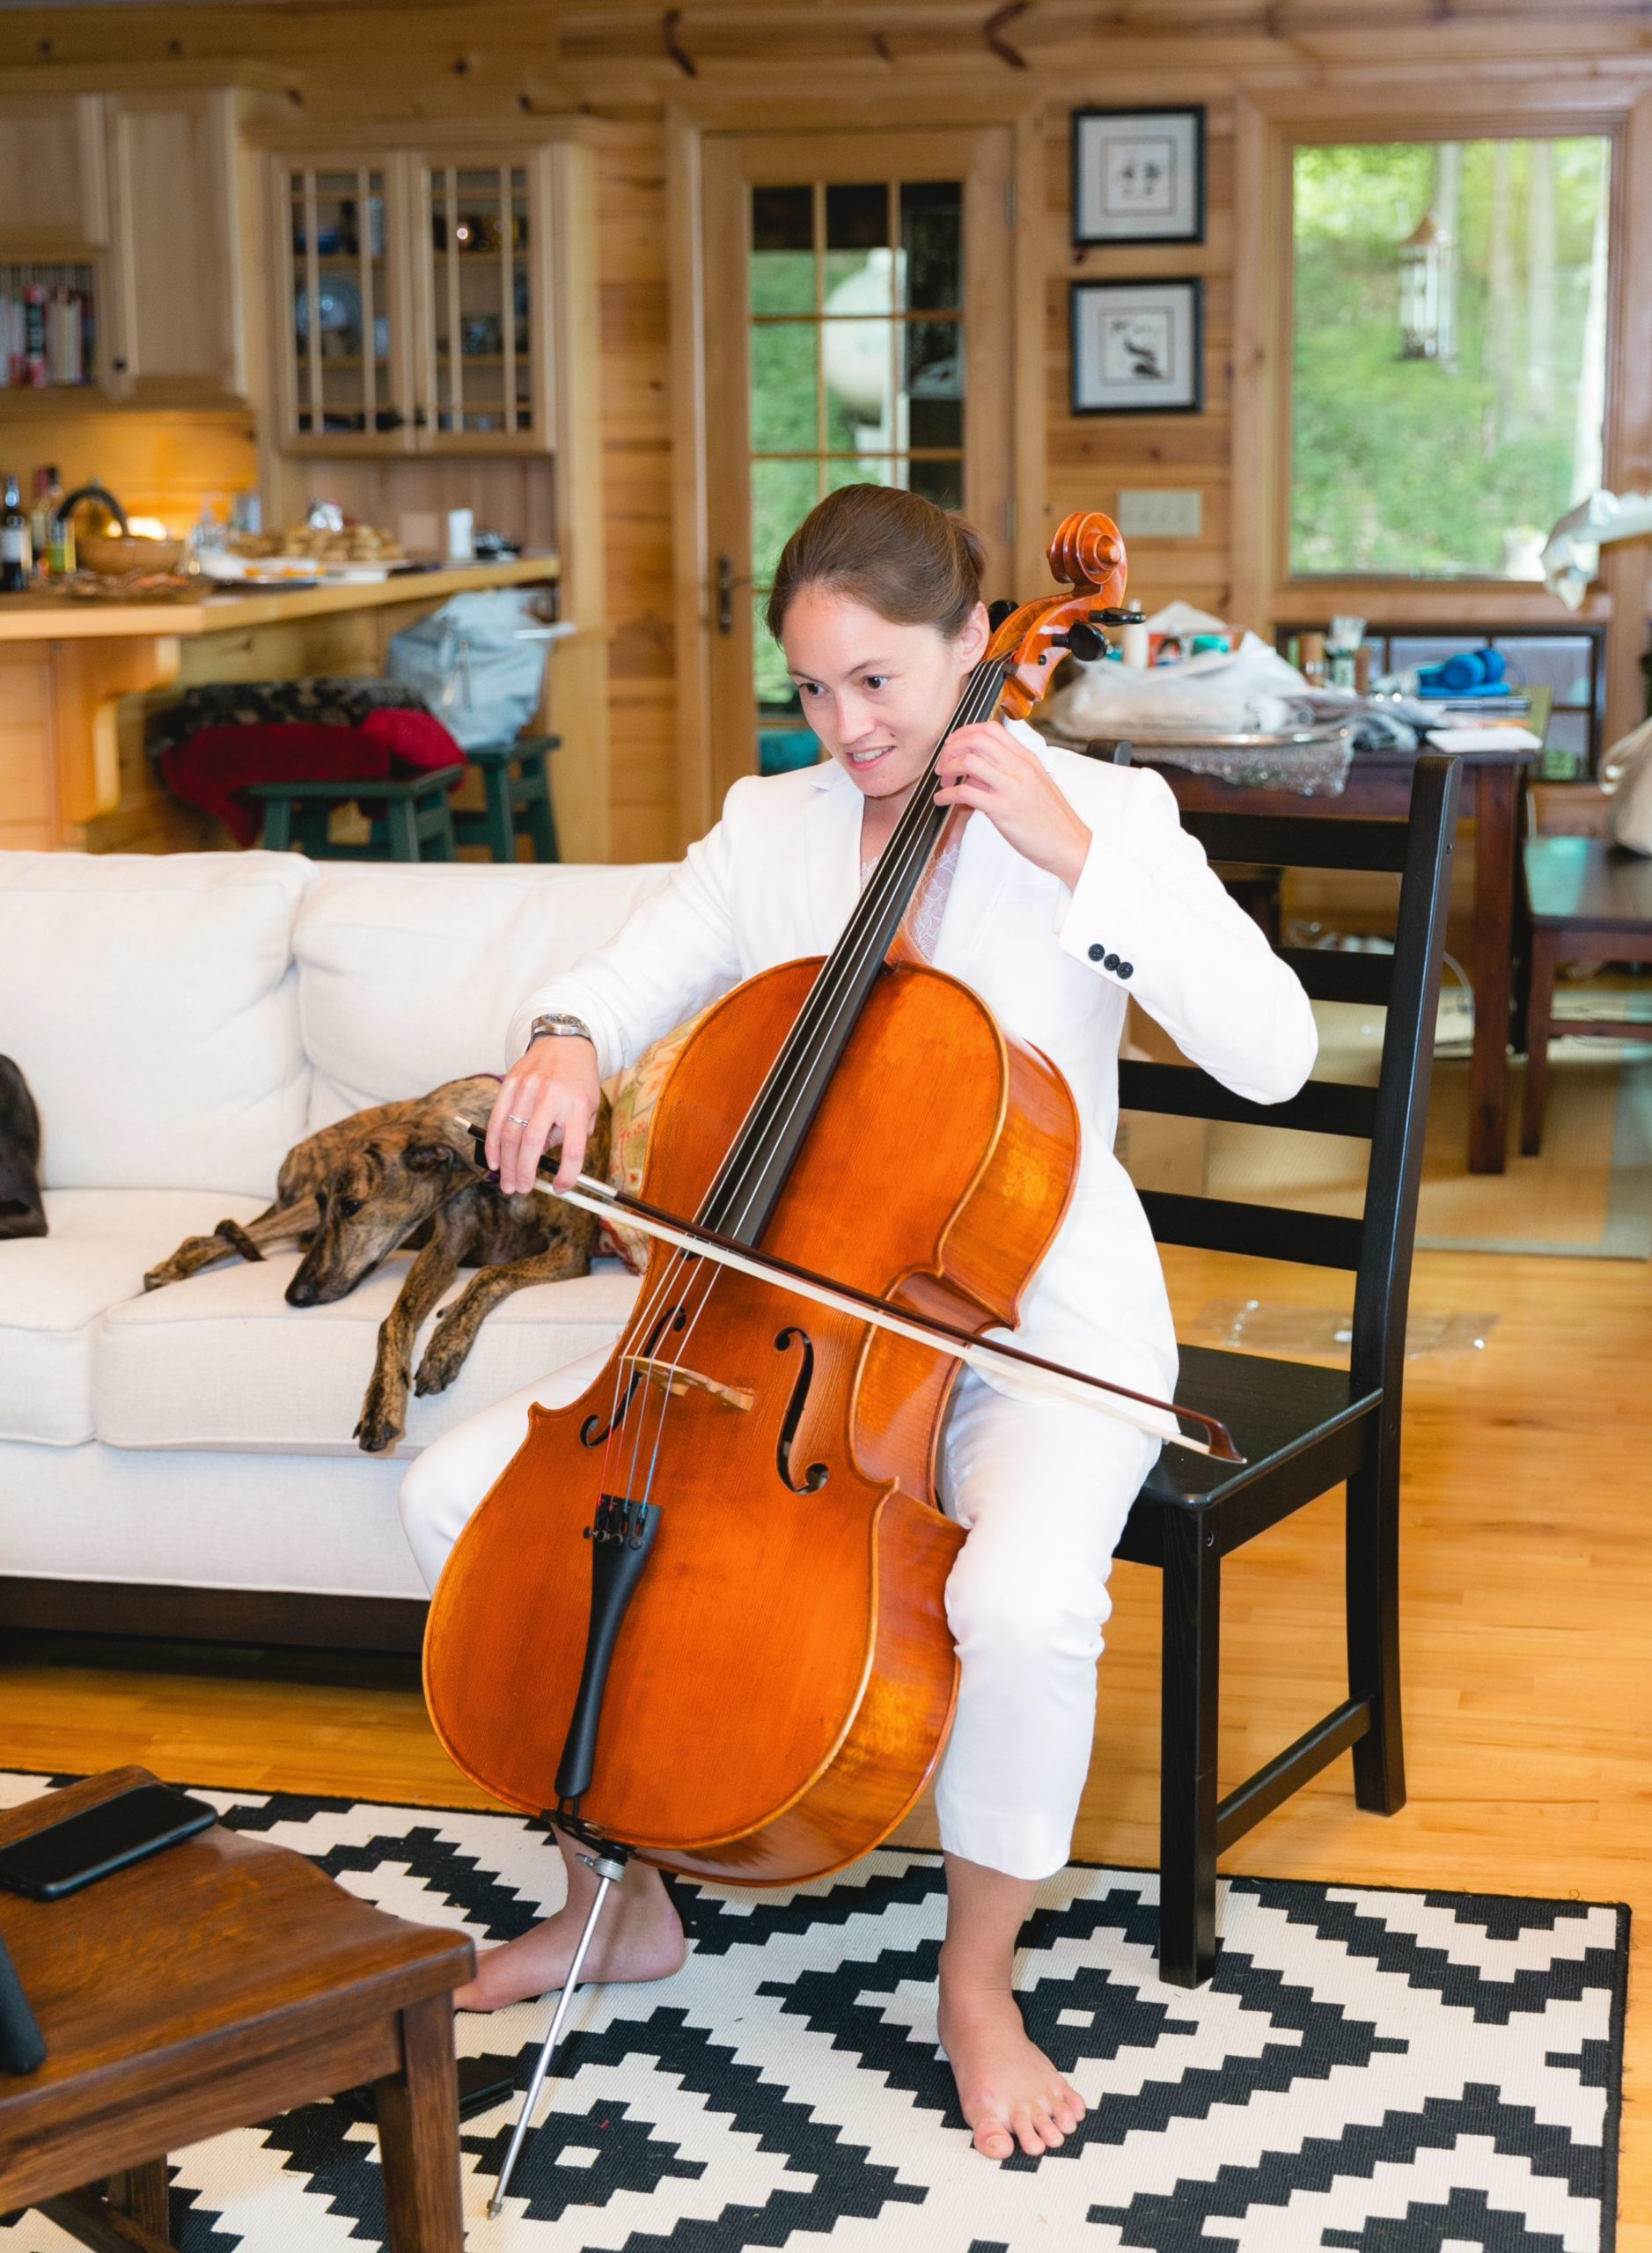 Rachel playing Cello